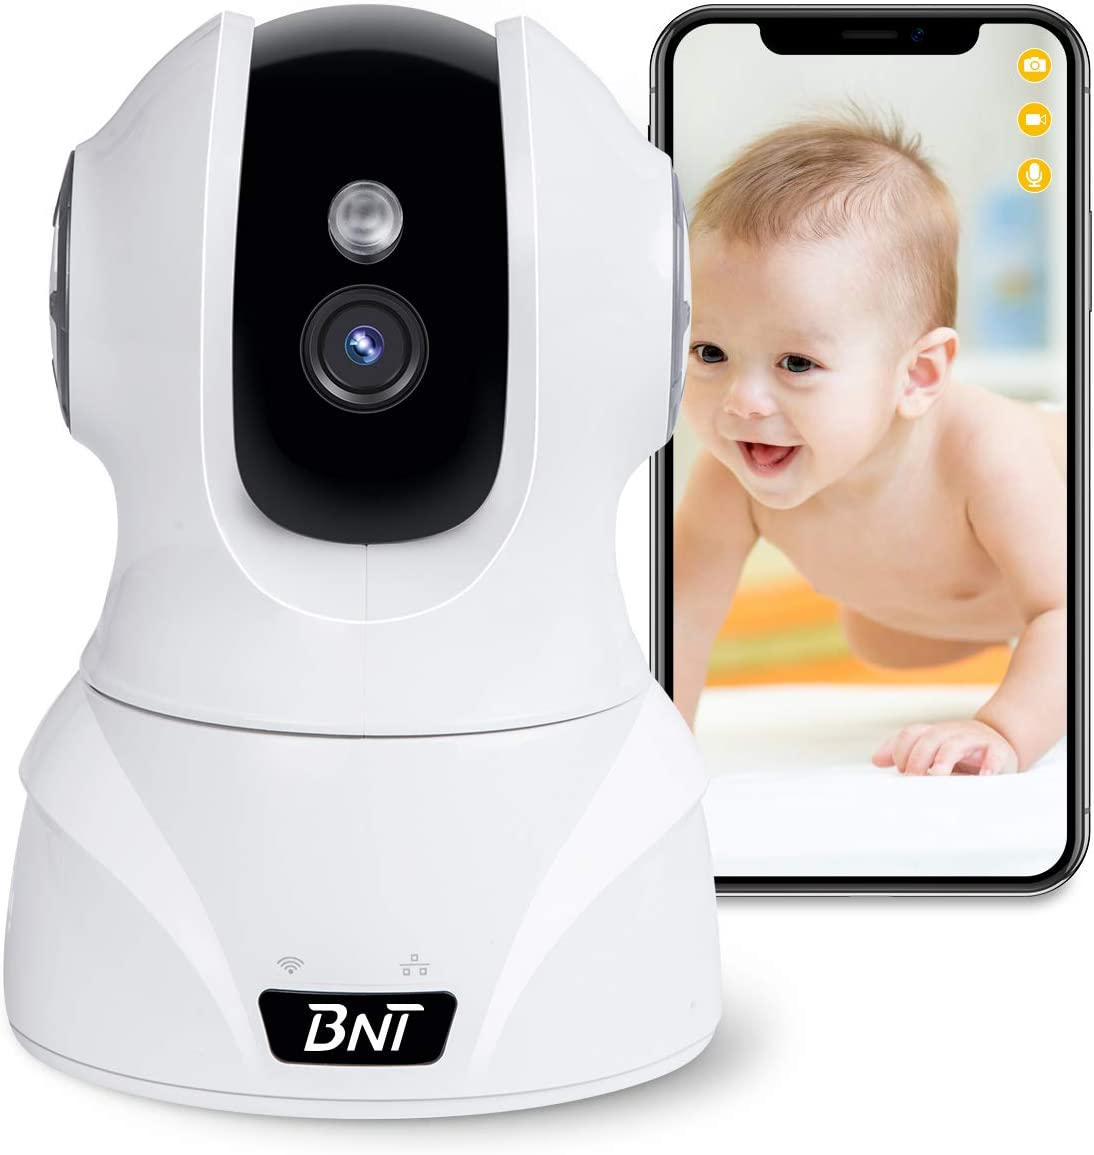 Security Camera WiFi IP Camera, BNT HD 1080P Home Wireless Baby Pet Camera with Cloud Storage Two-Way Audio Motion Detection Night Vision Remote Monitoring, Work With Alexa